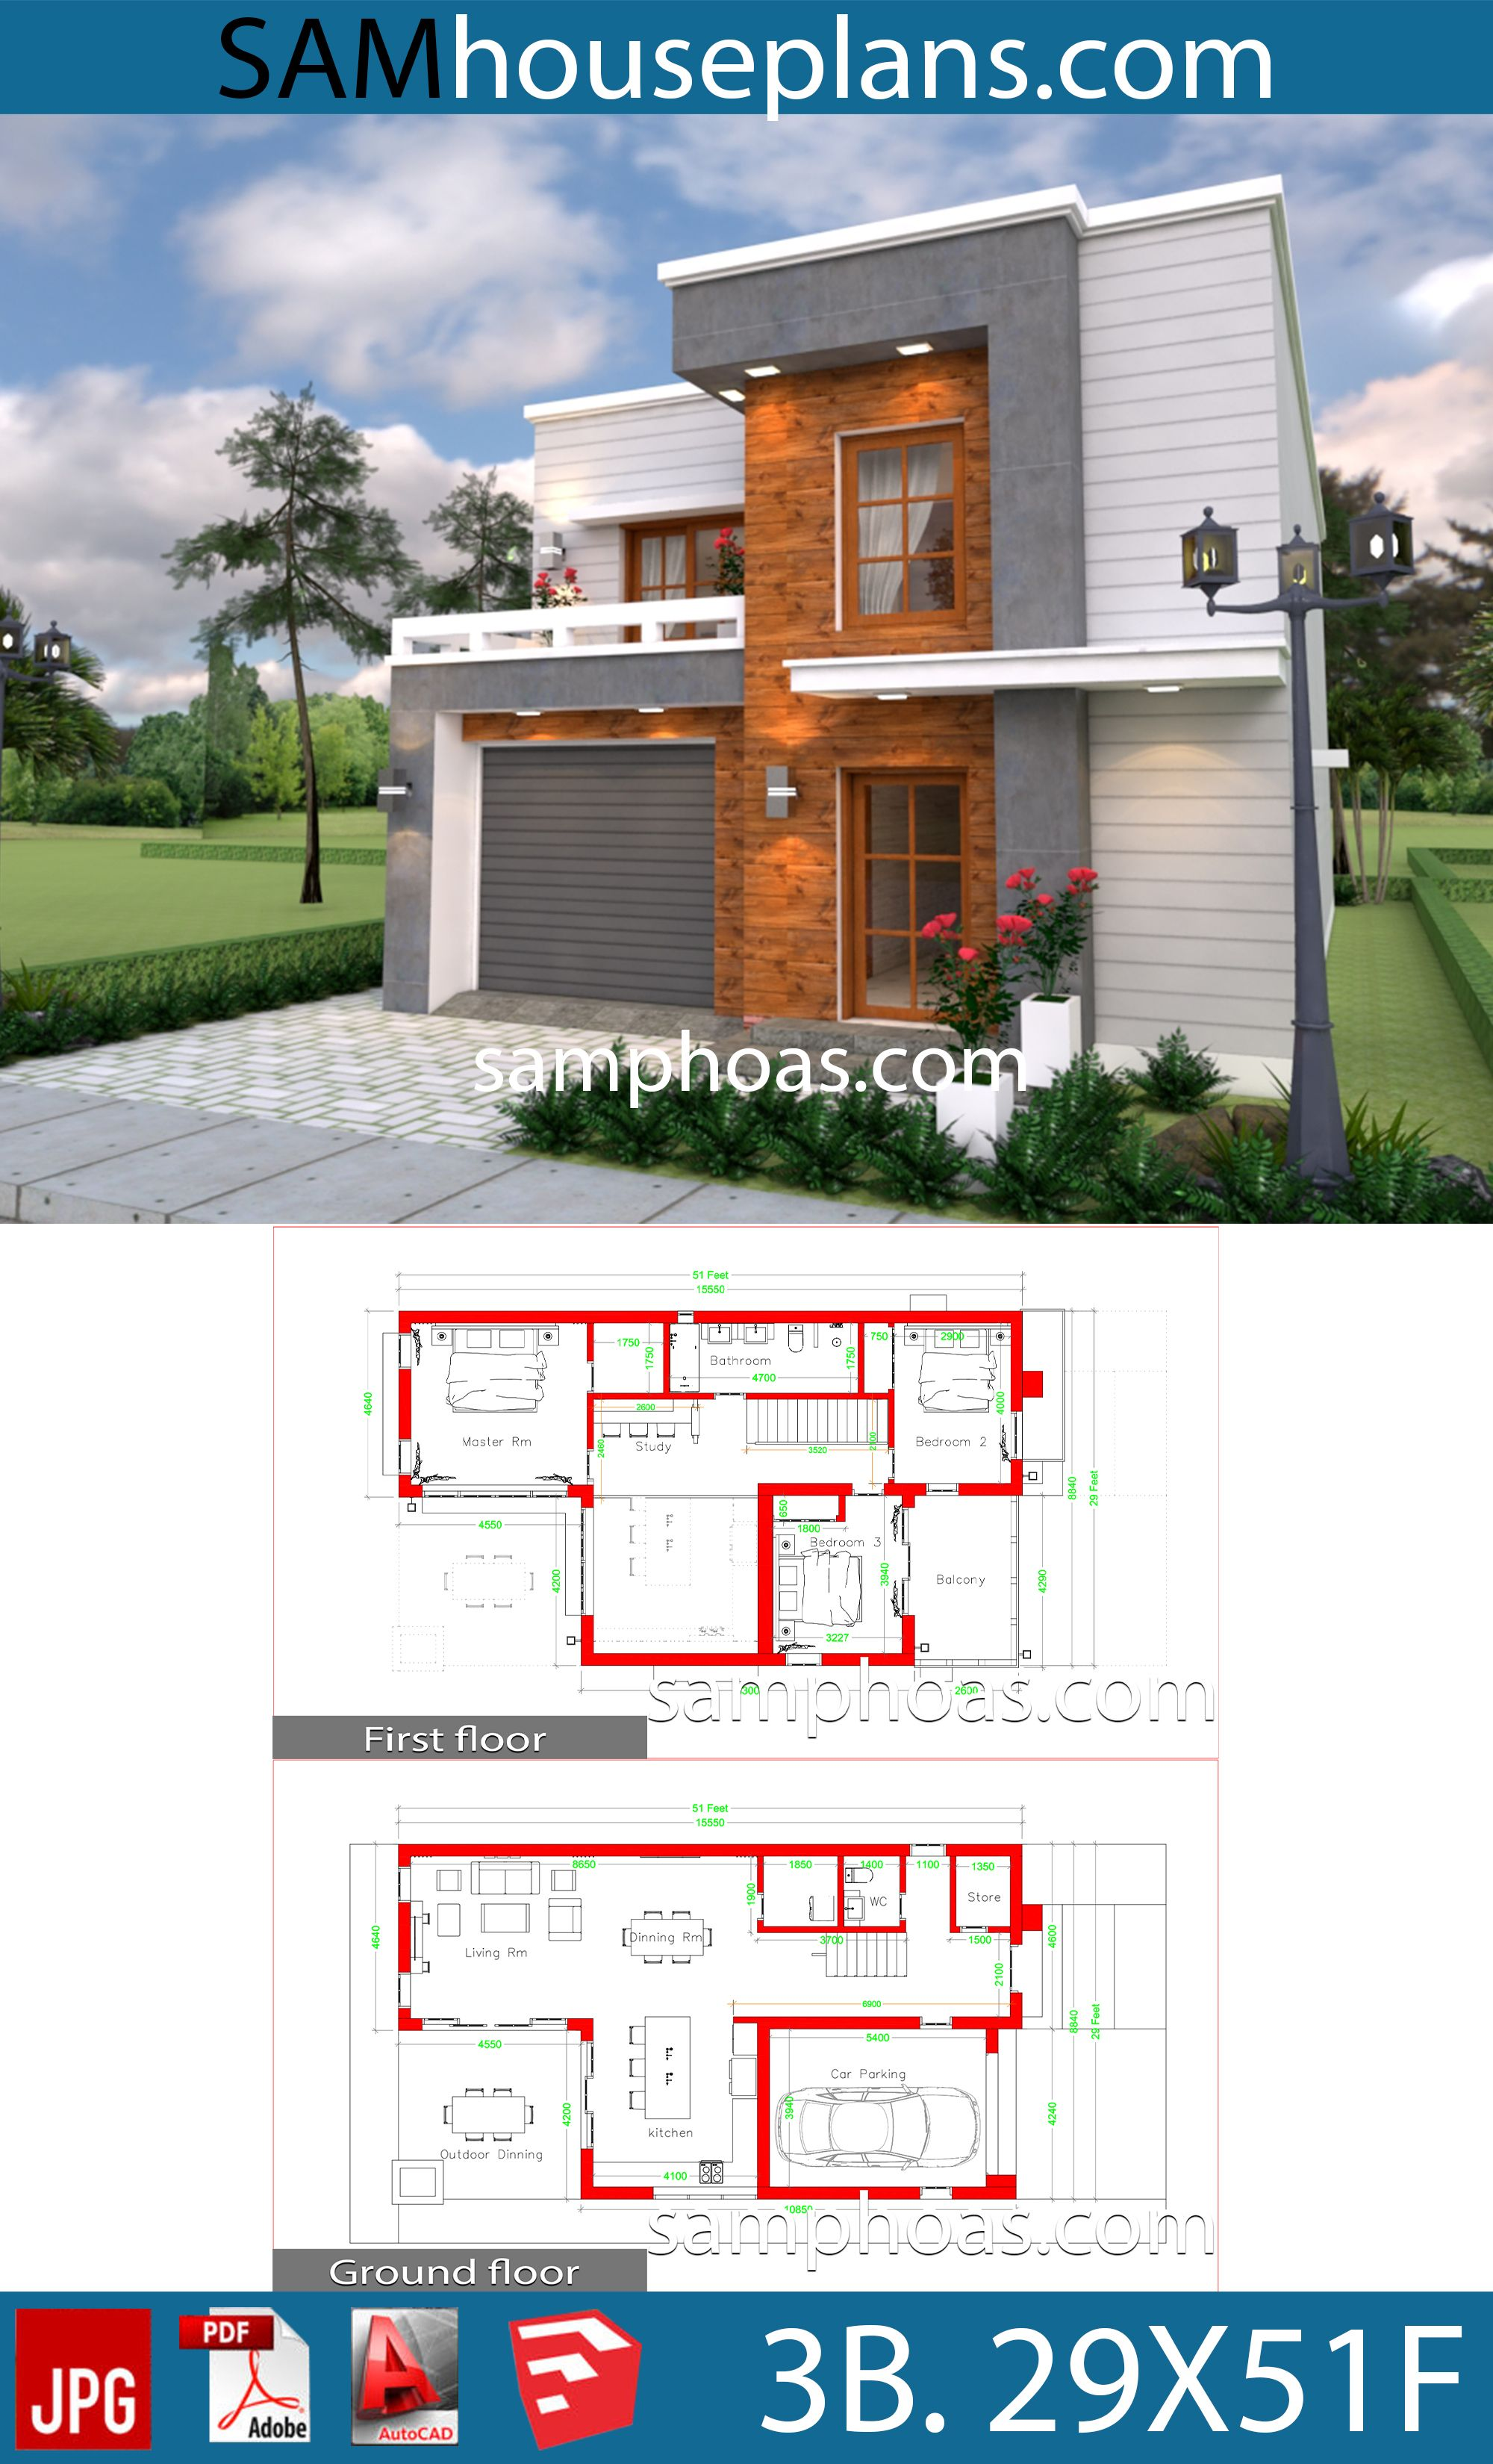 House Design Plans 29x51 Feet With 3 Bedrooms Sam House Plans Home Design Plans Architectural Design House Plans House Design